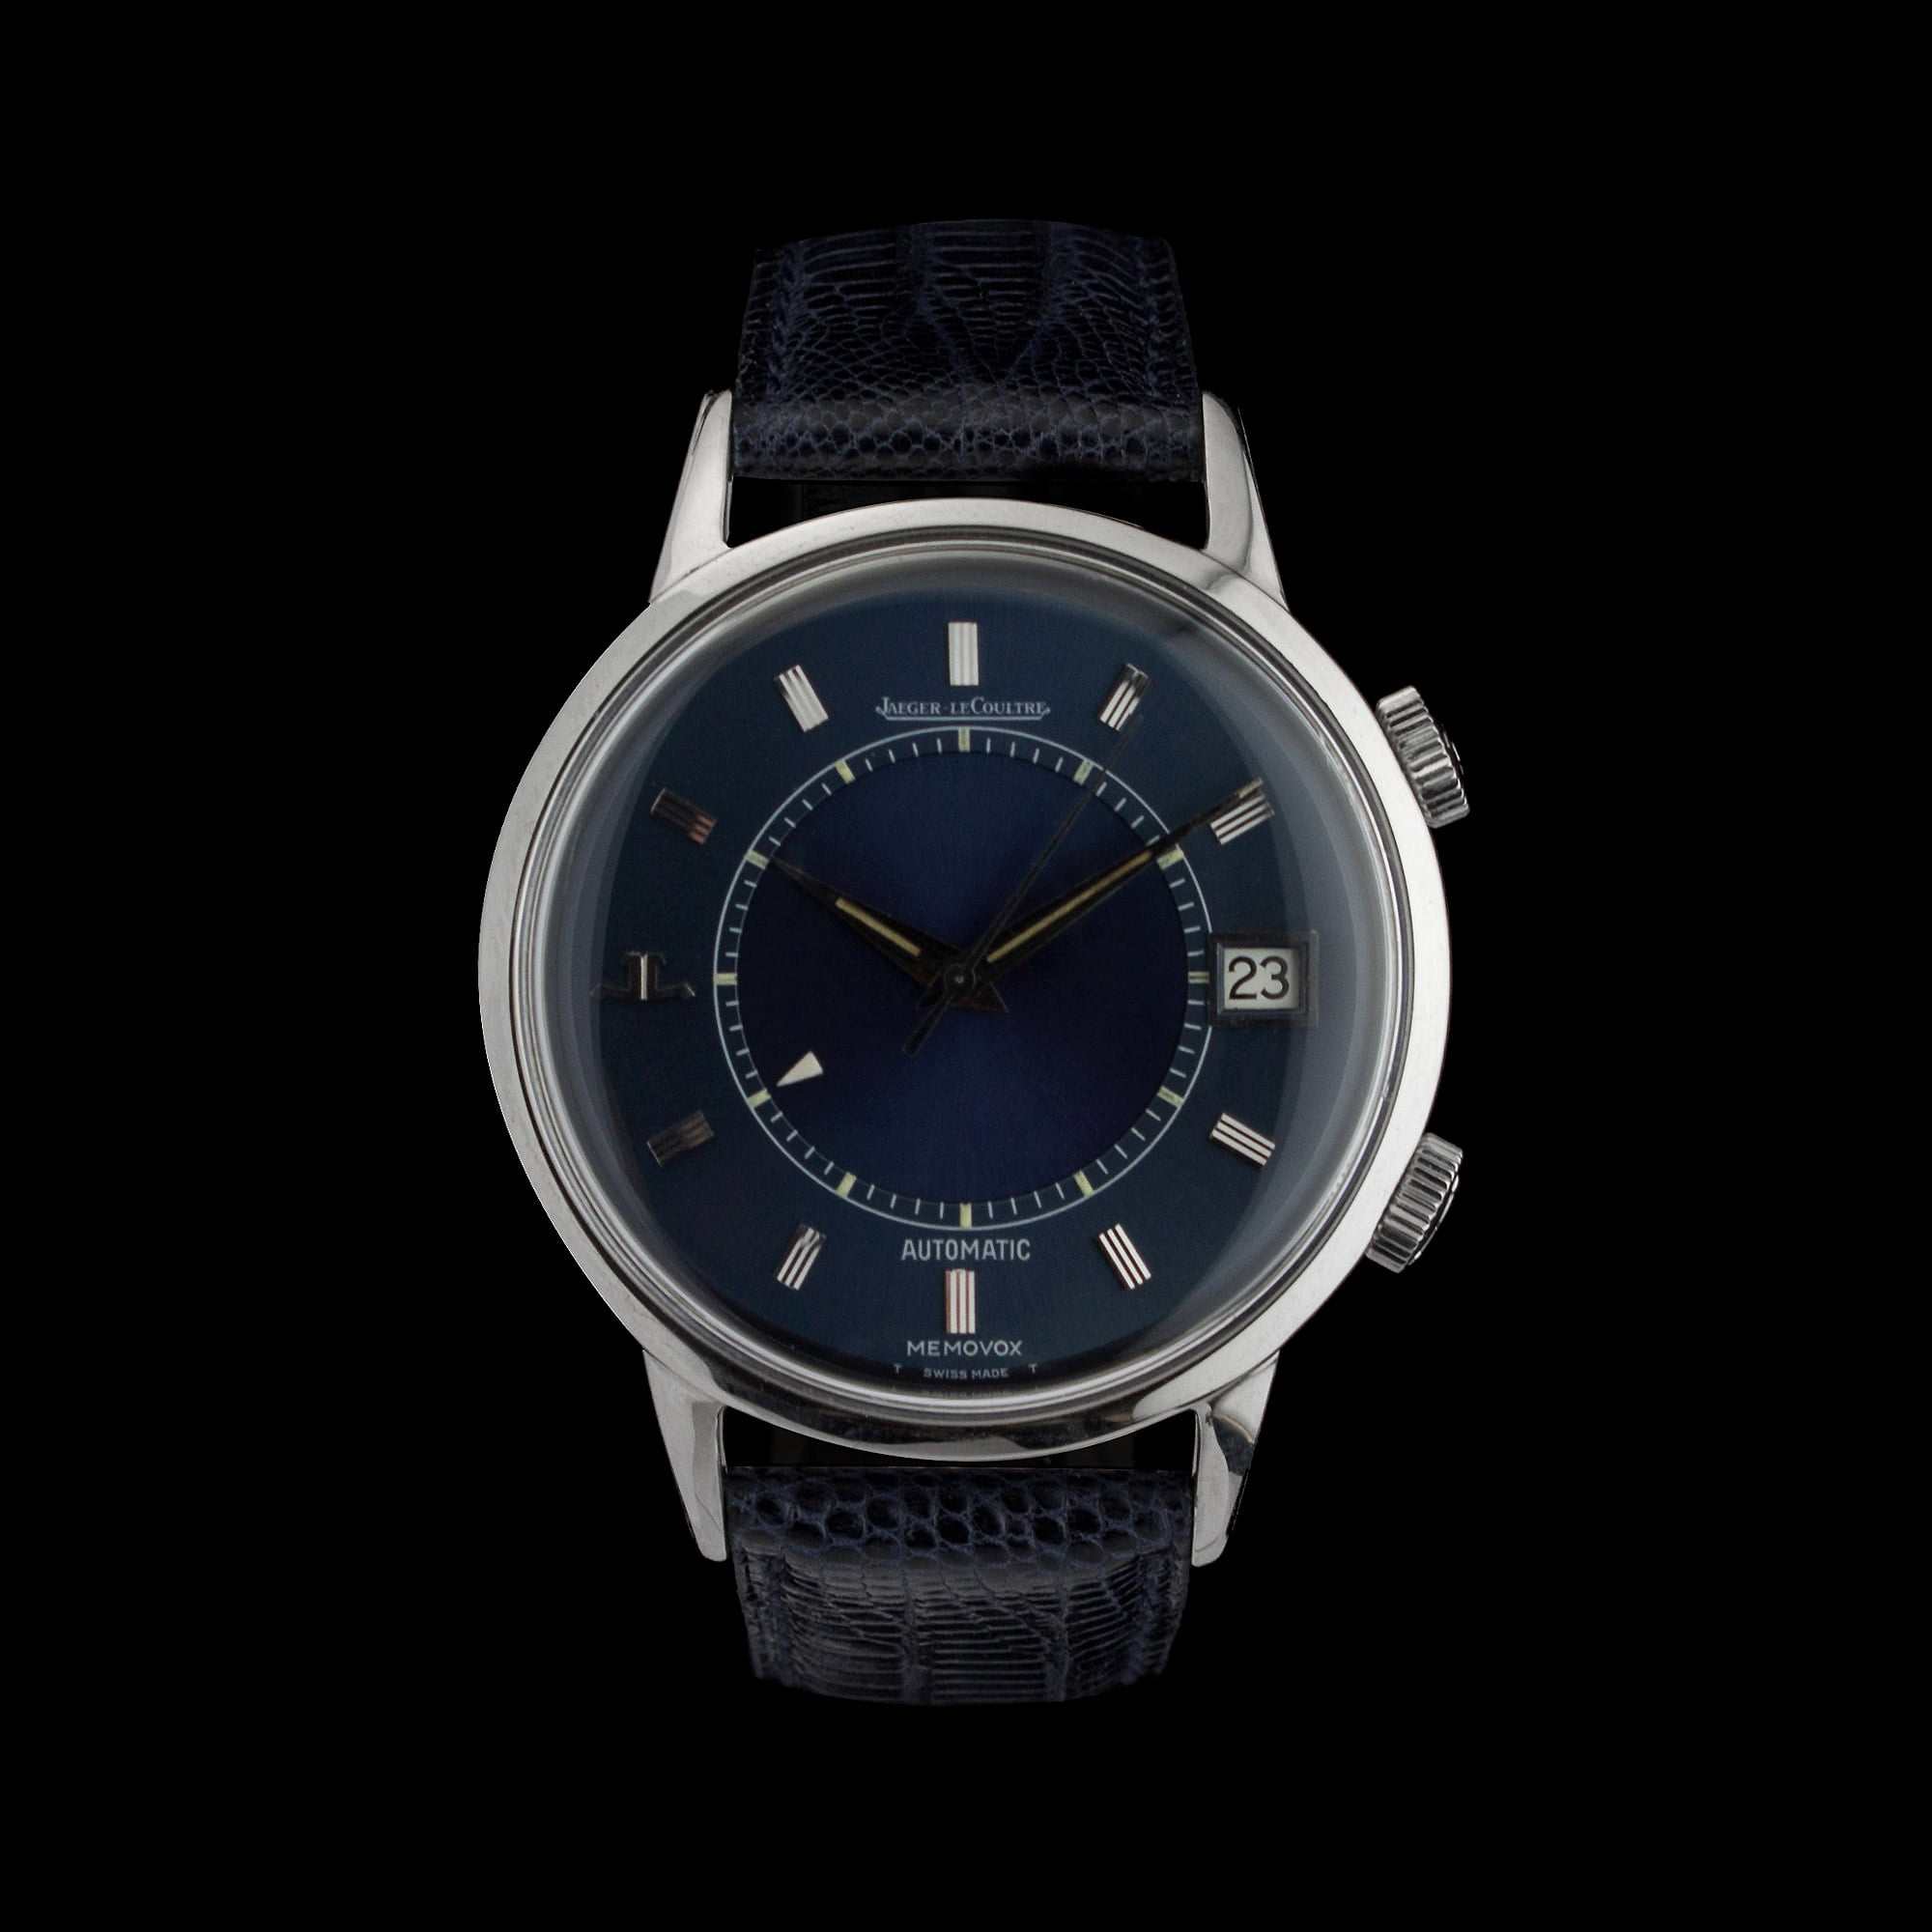 Jaeger lecoultre memovox speedbeat amsterdam vintage watches for Lecoultre watches